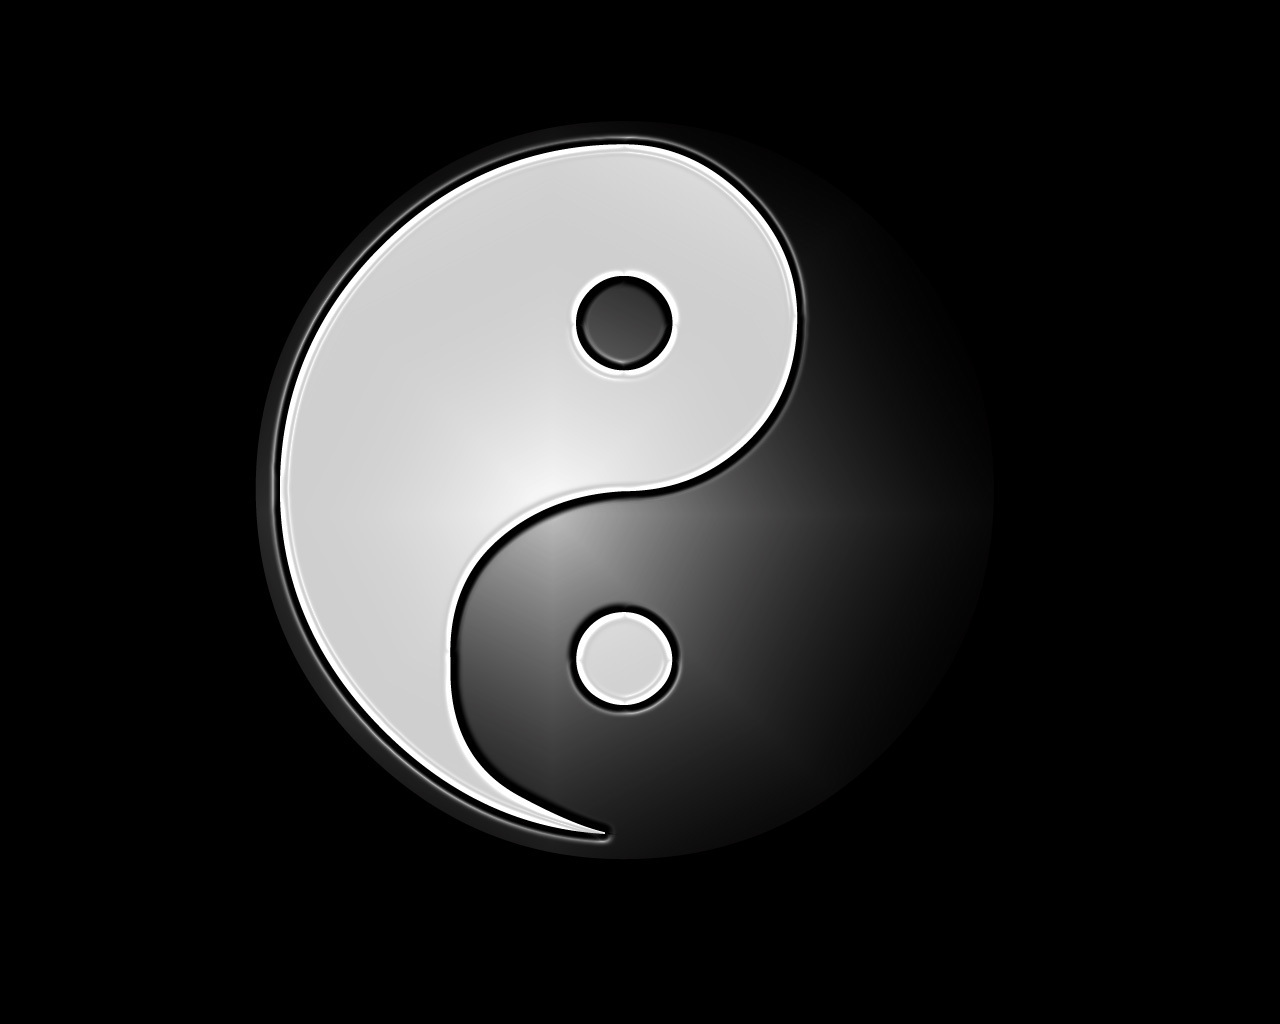 akimamg images yin and yang hd wallpaper and background photos